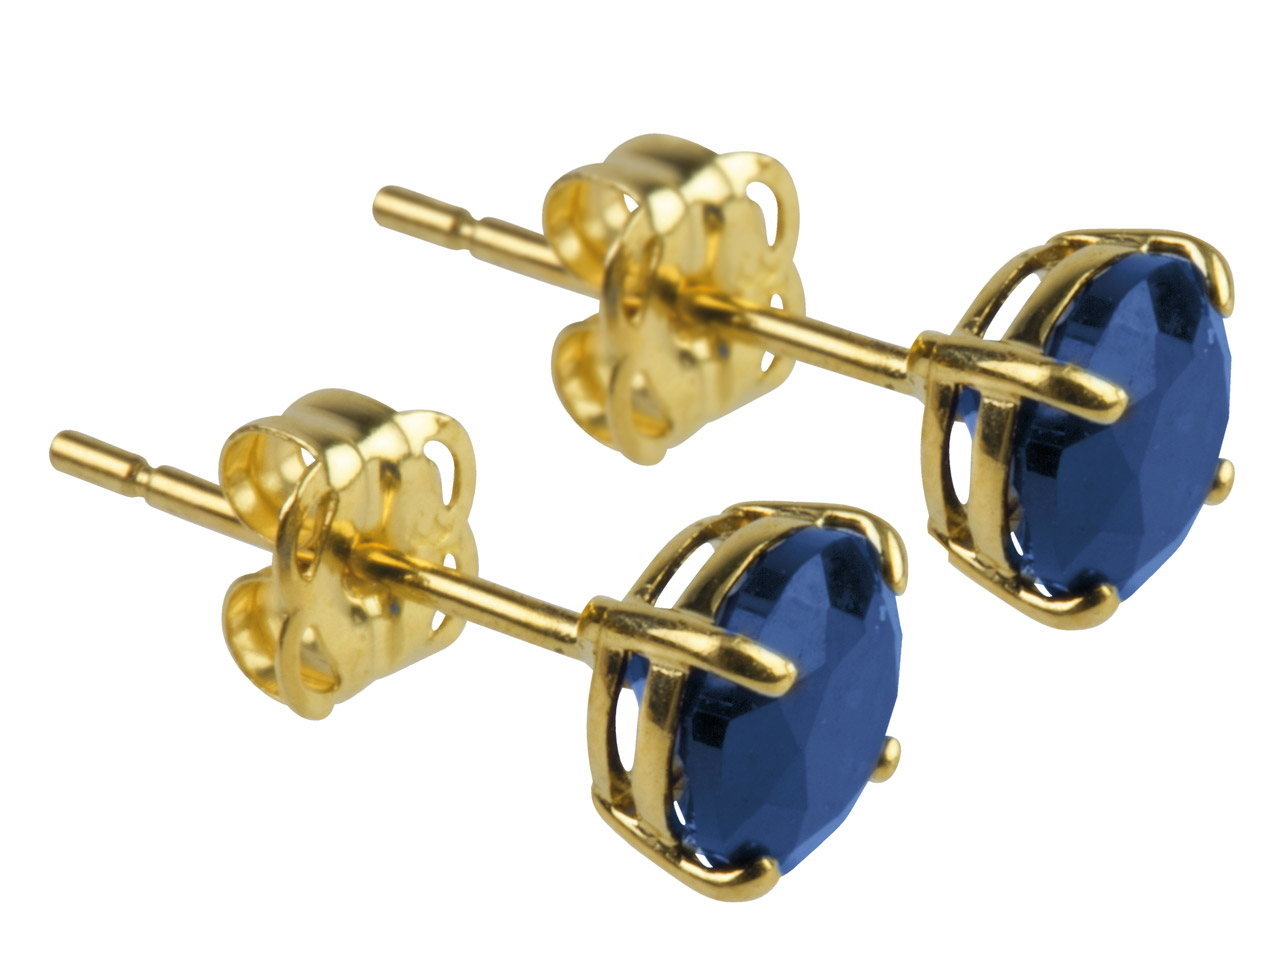 9ct Yellow Birthstone Earrings 5mm Round Created Sapphire - September